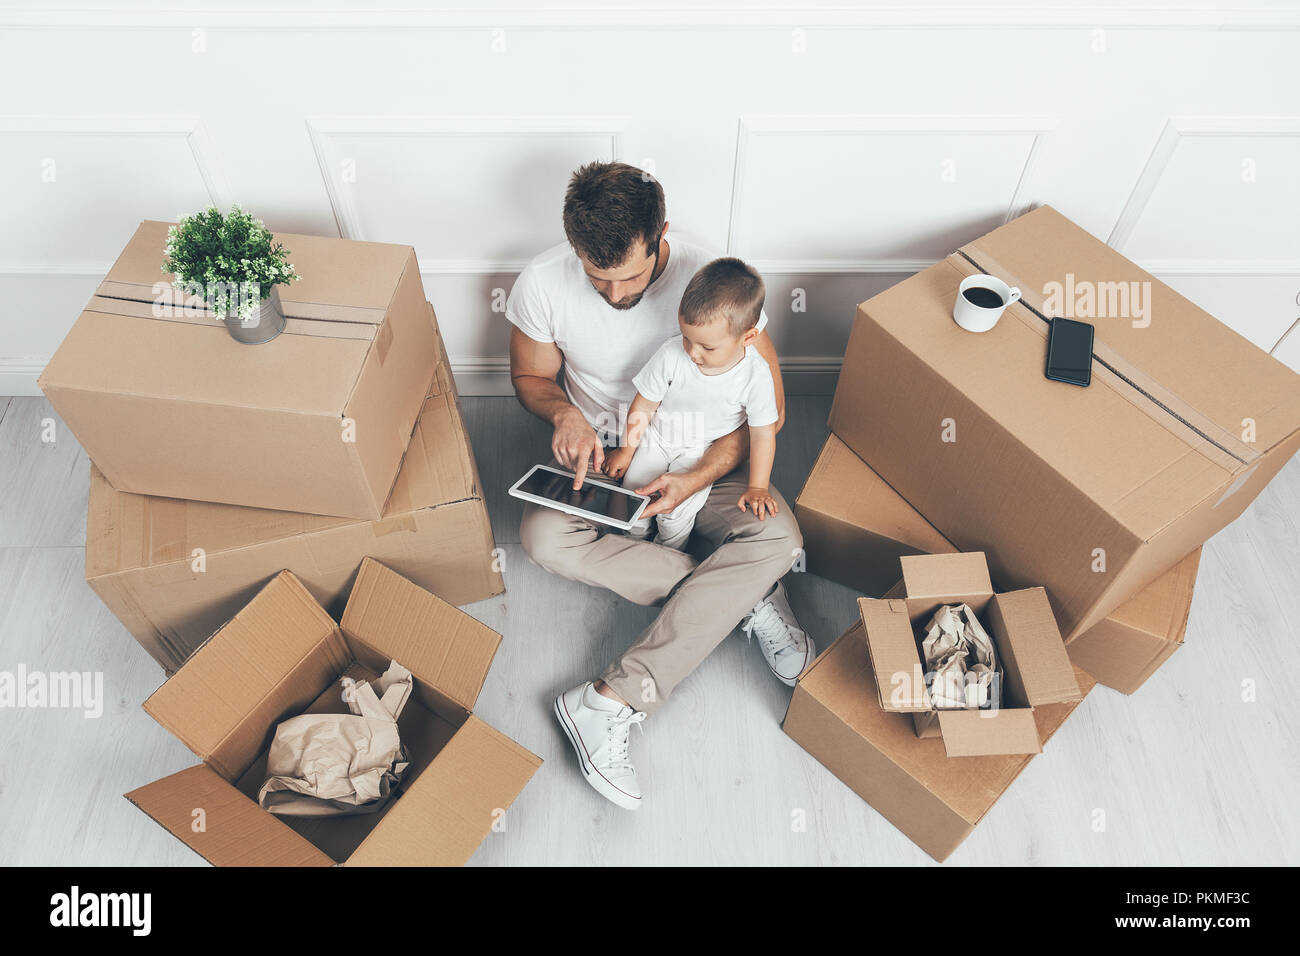 Top view. Father and son moving into their new home - Stock Image